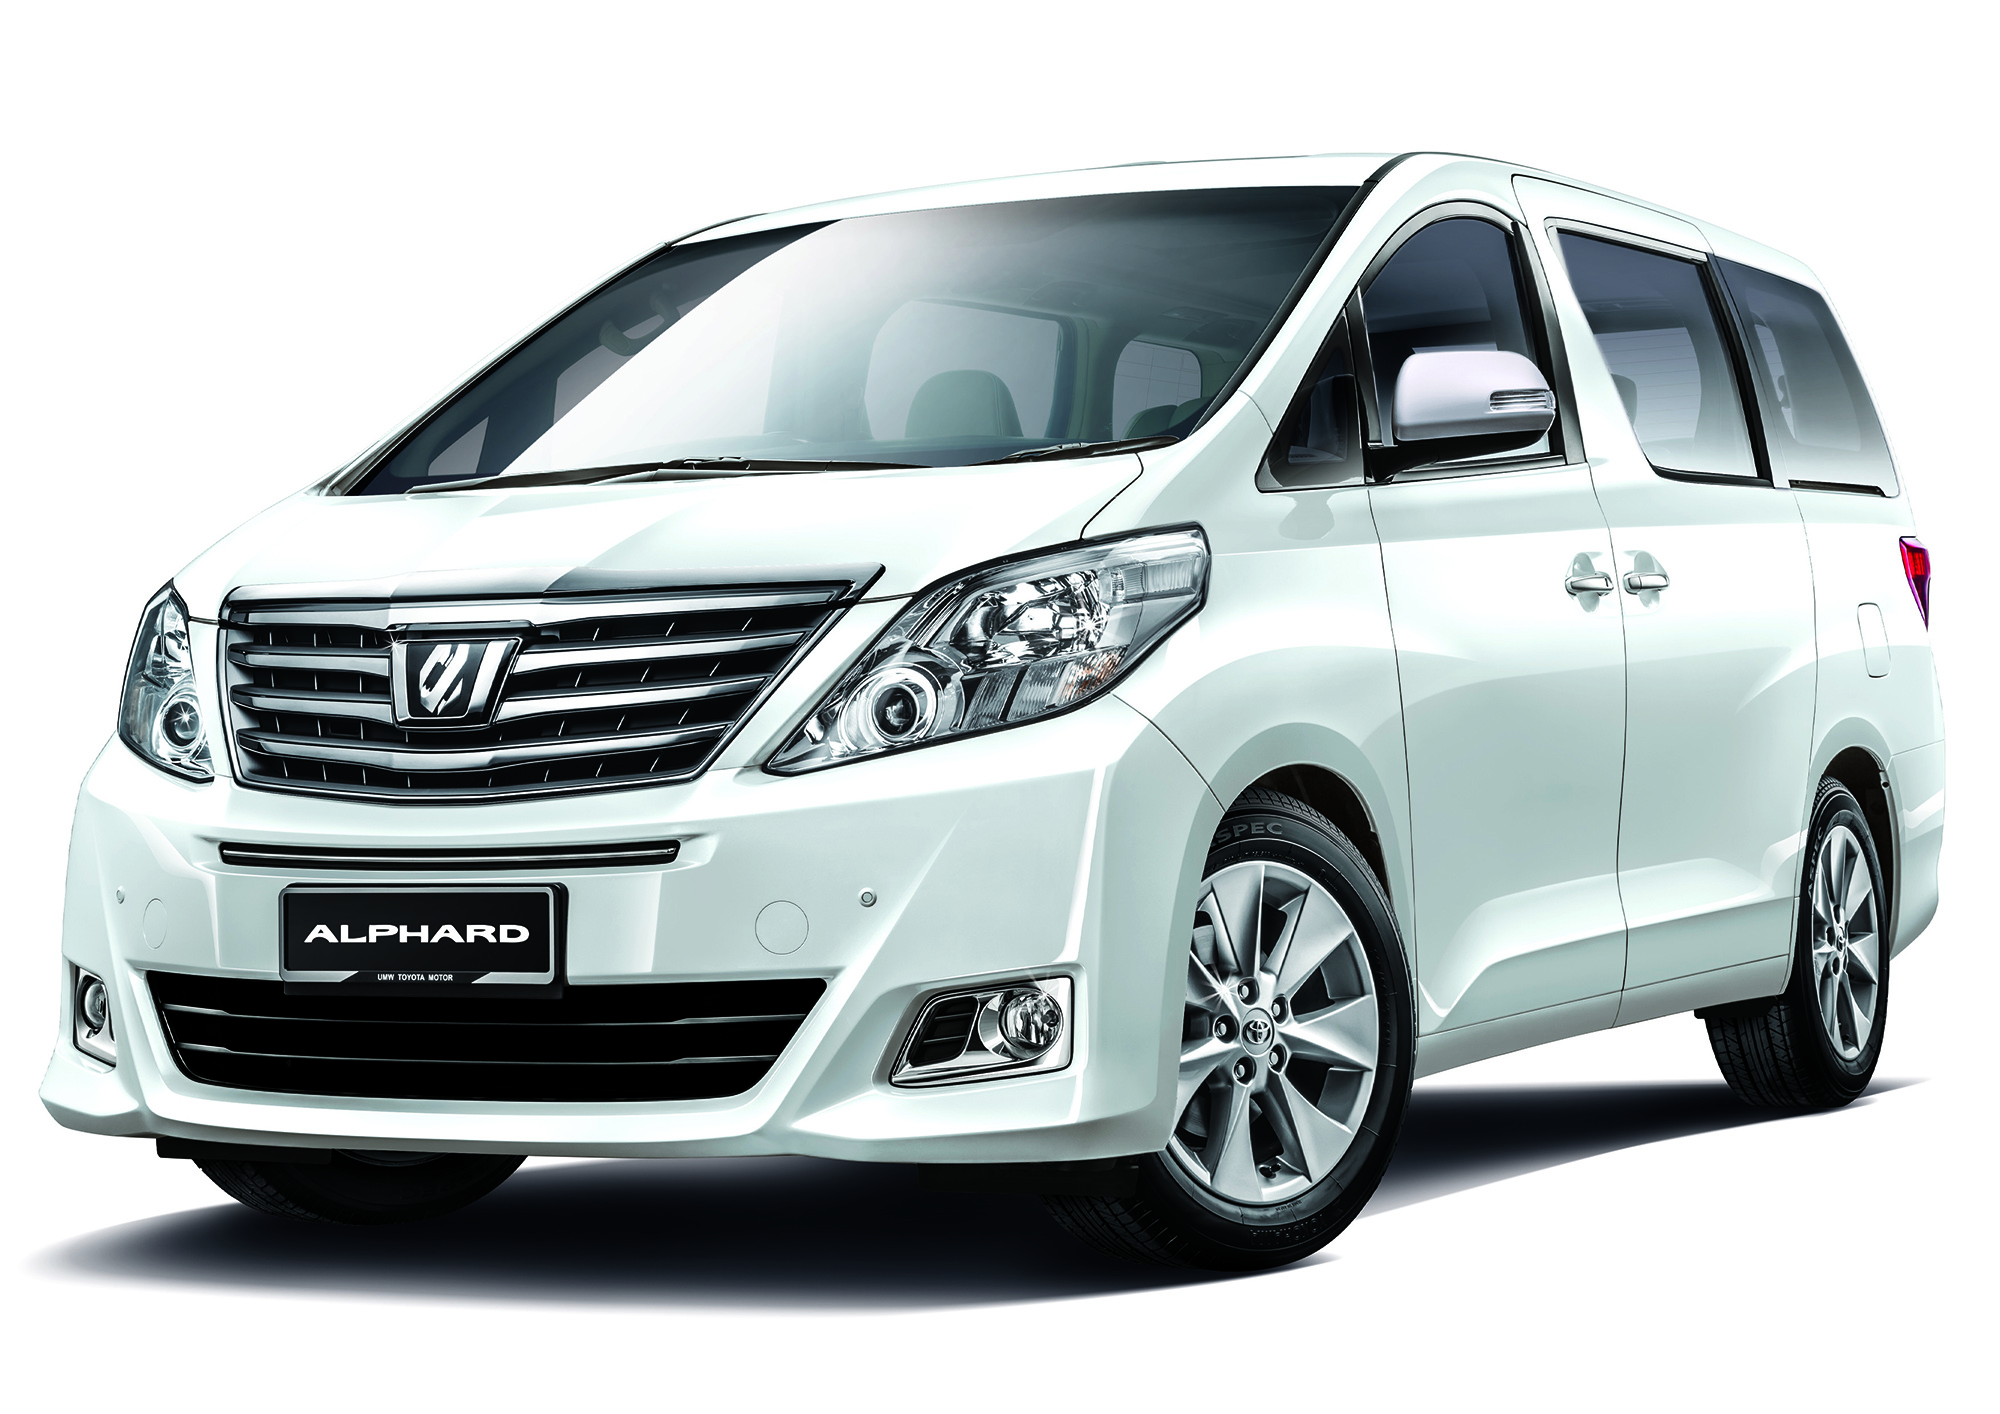 Toyota Offering Alphard And Previa Deals For Raya HD Wallpapers Download free images and photos [musssic.tk]